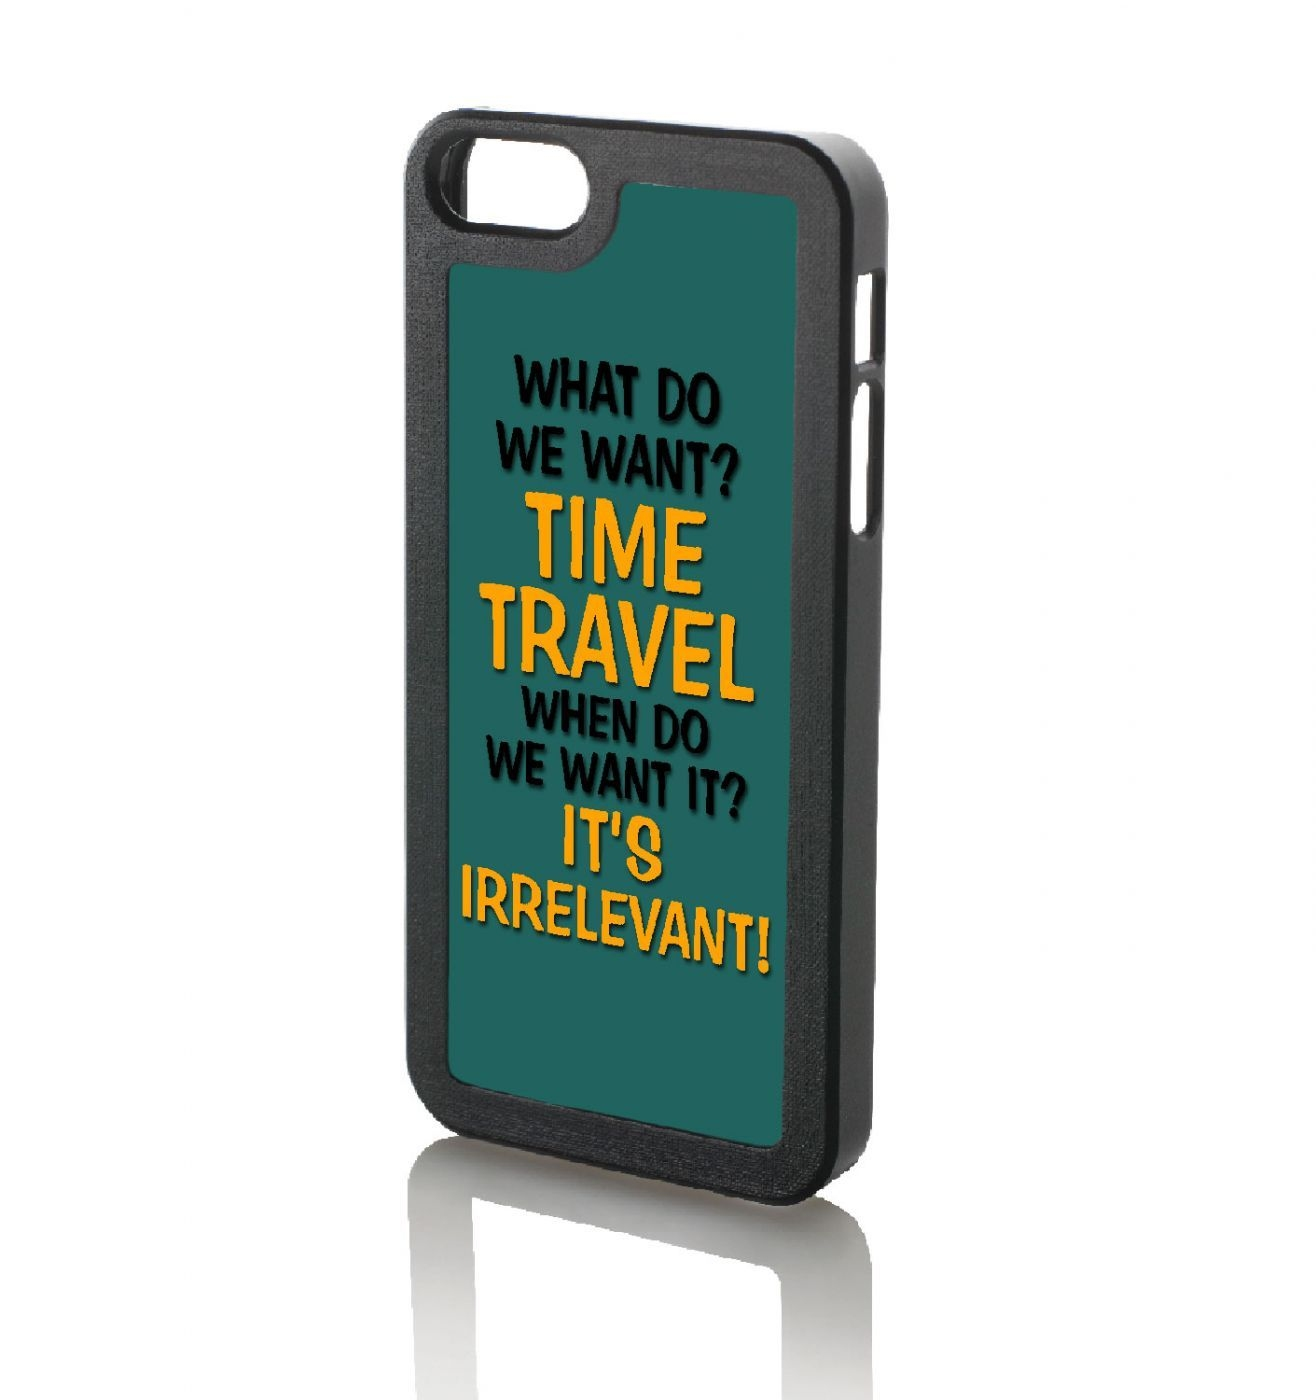 What Do We Want? Time Travel iPhone 5/5s phone case